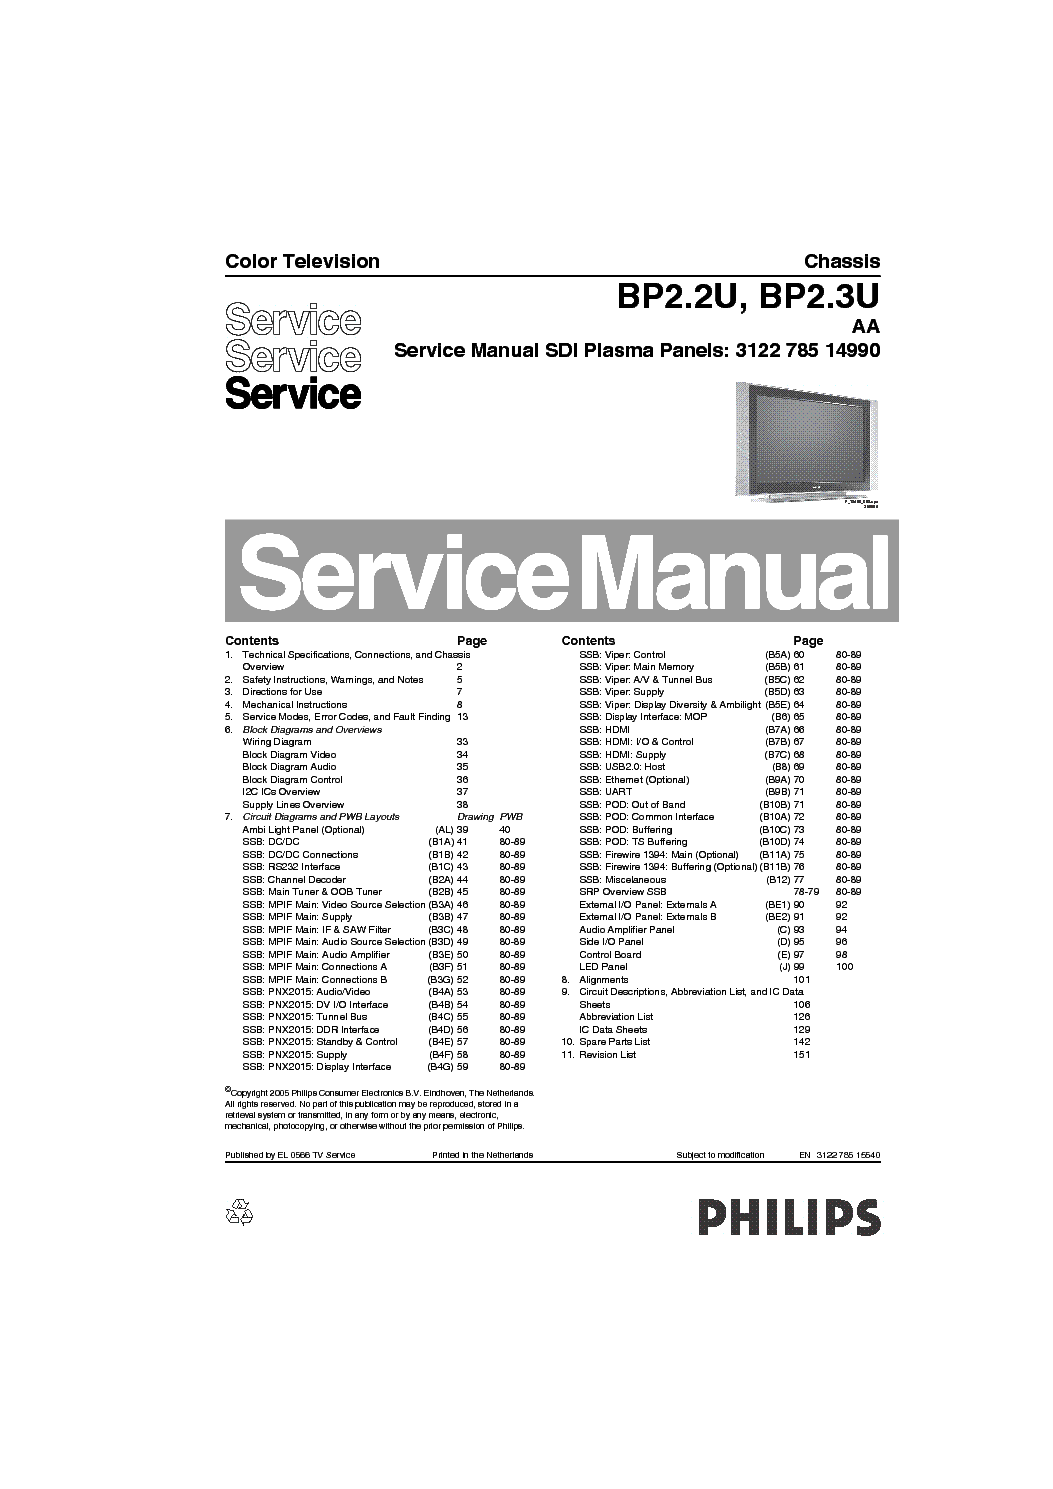 PHILIPS BP2.2UAA CHASSIS PLASMA TV SM Service Manual